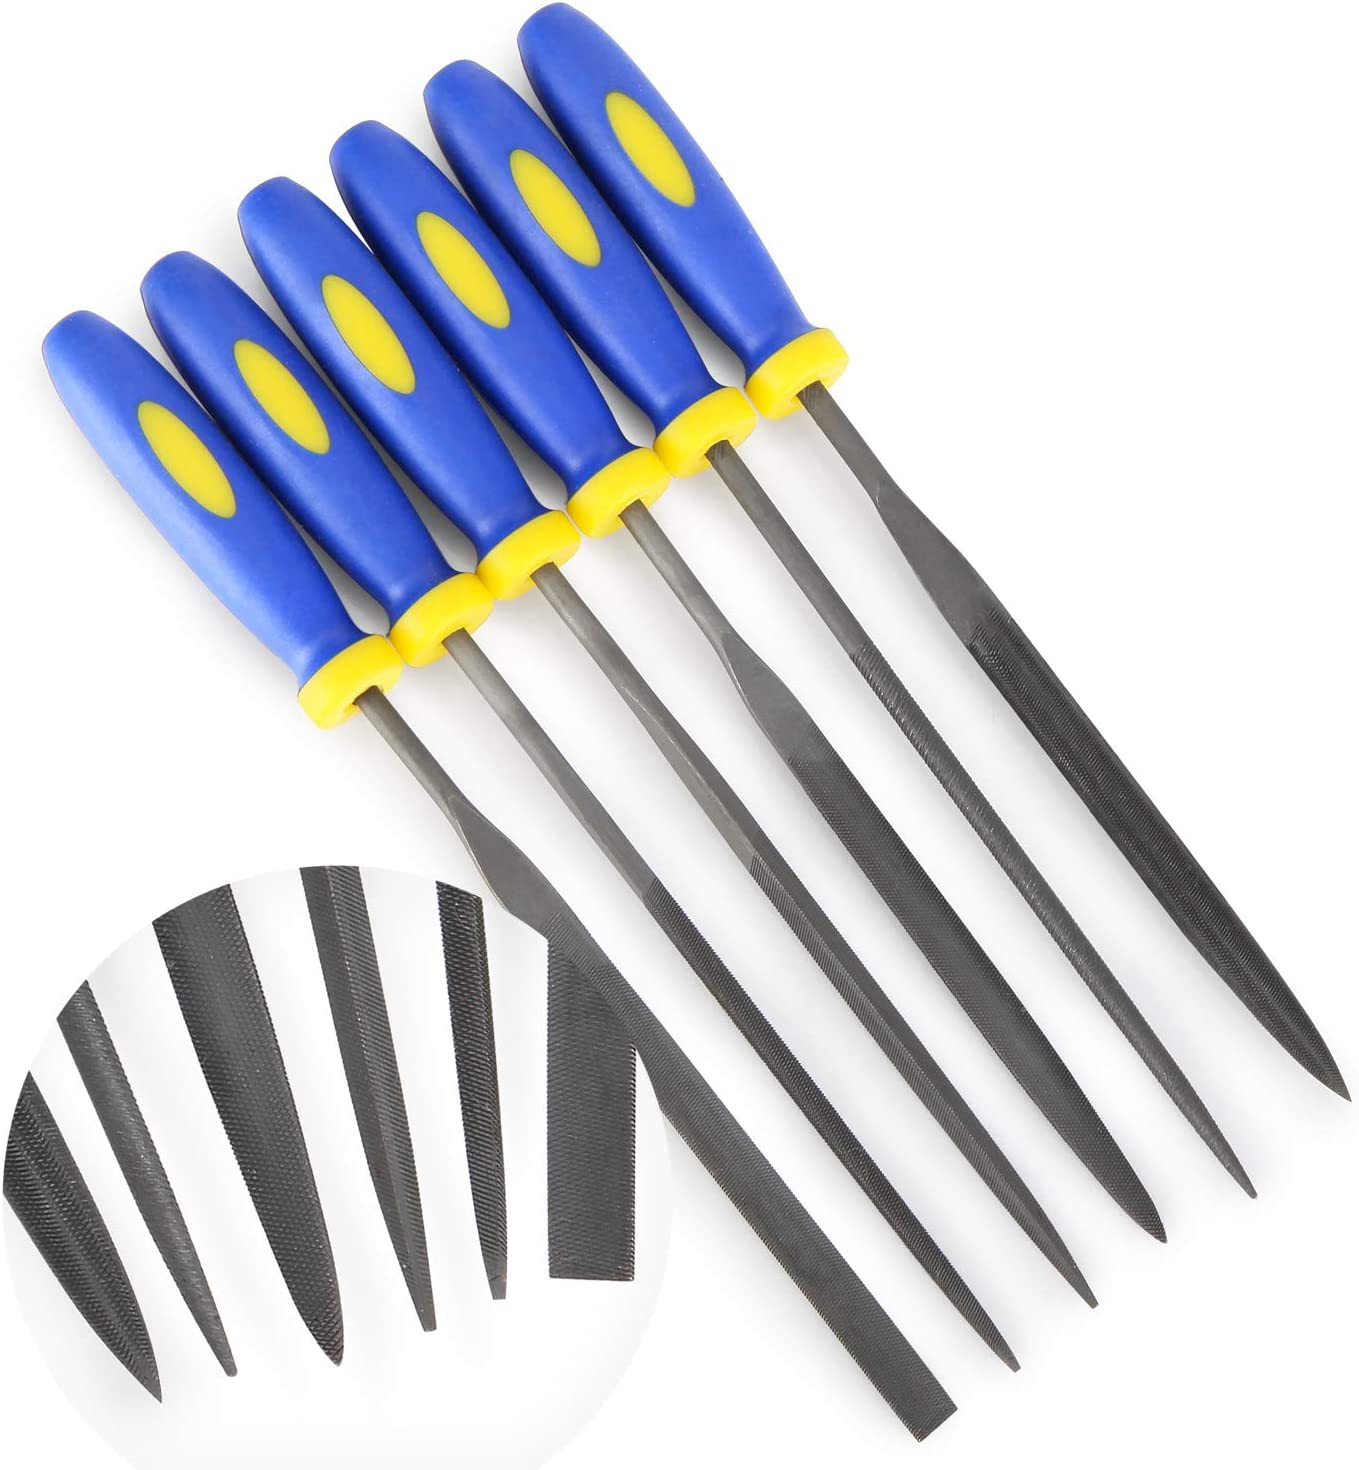 MINI Needle File Set (Carbon Steel 6 Piece-Set) Hardened Alloy Strength Steel - Set Includes Flat, Flat Warding, Square, Triangular, Round, and Half-Round File(6'' Total Length)